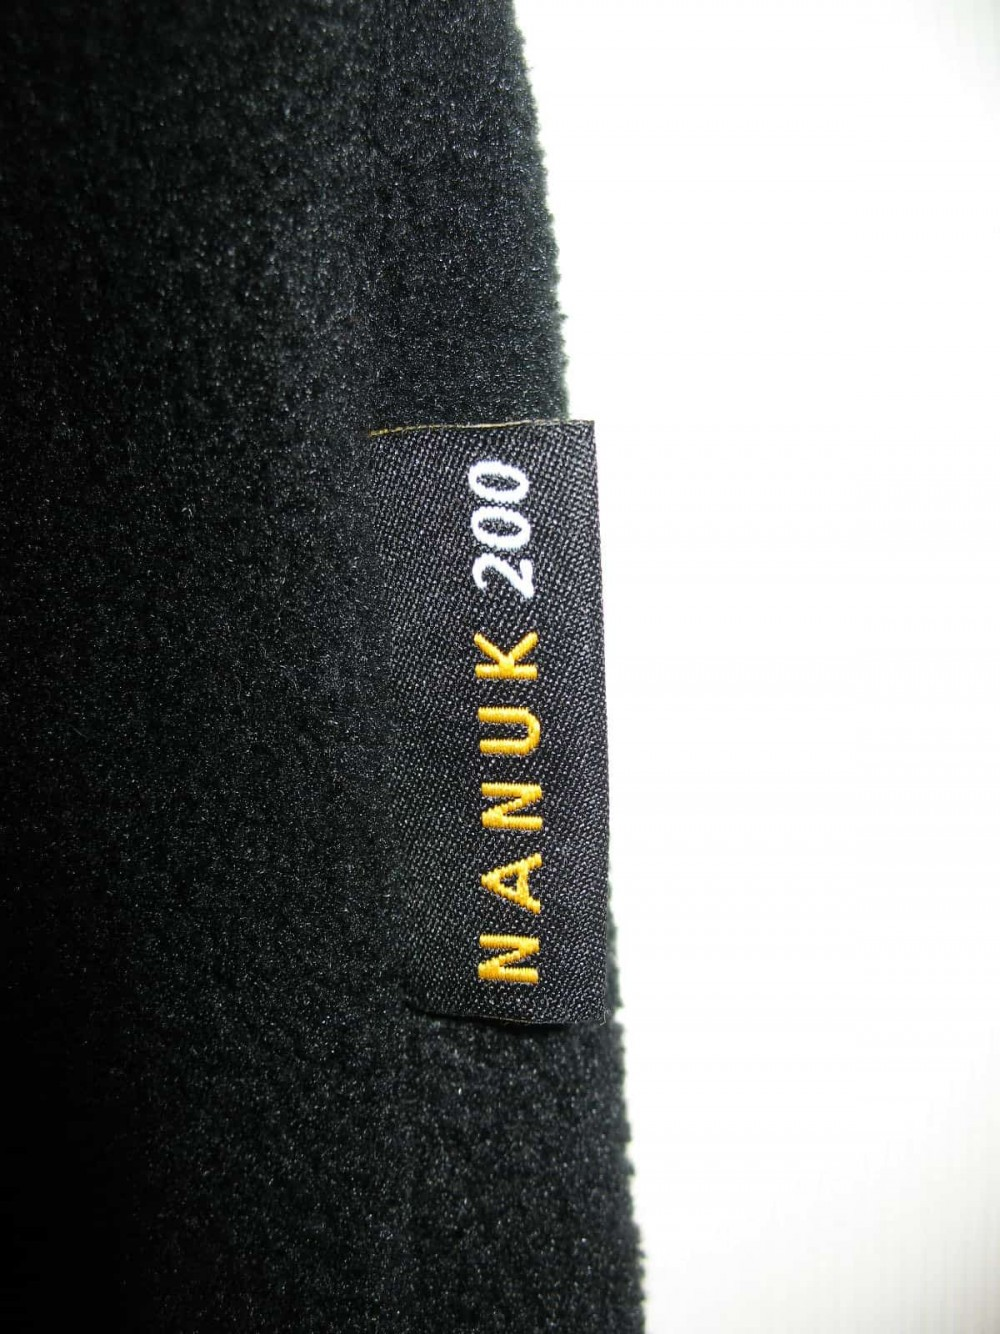 Куртка JACK WOLFSKIN nanuk 200 fleece jacket (размер L) - 4